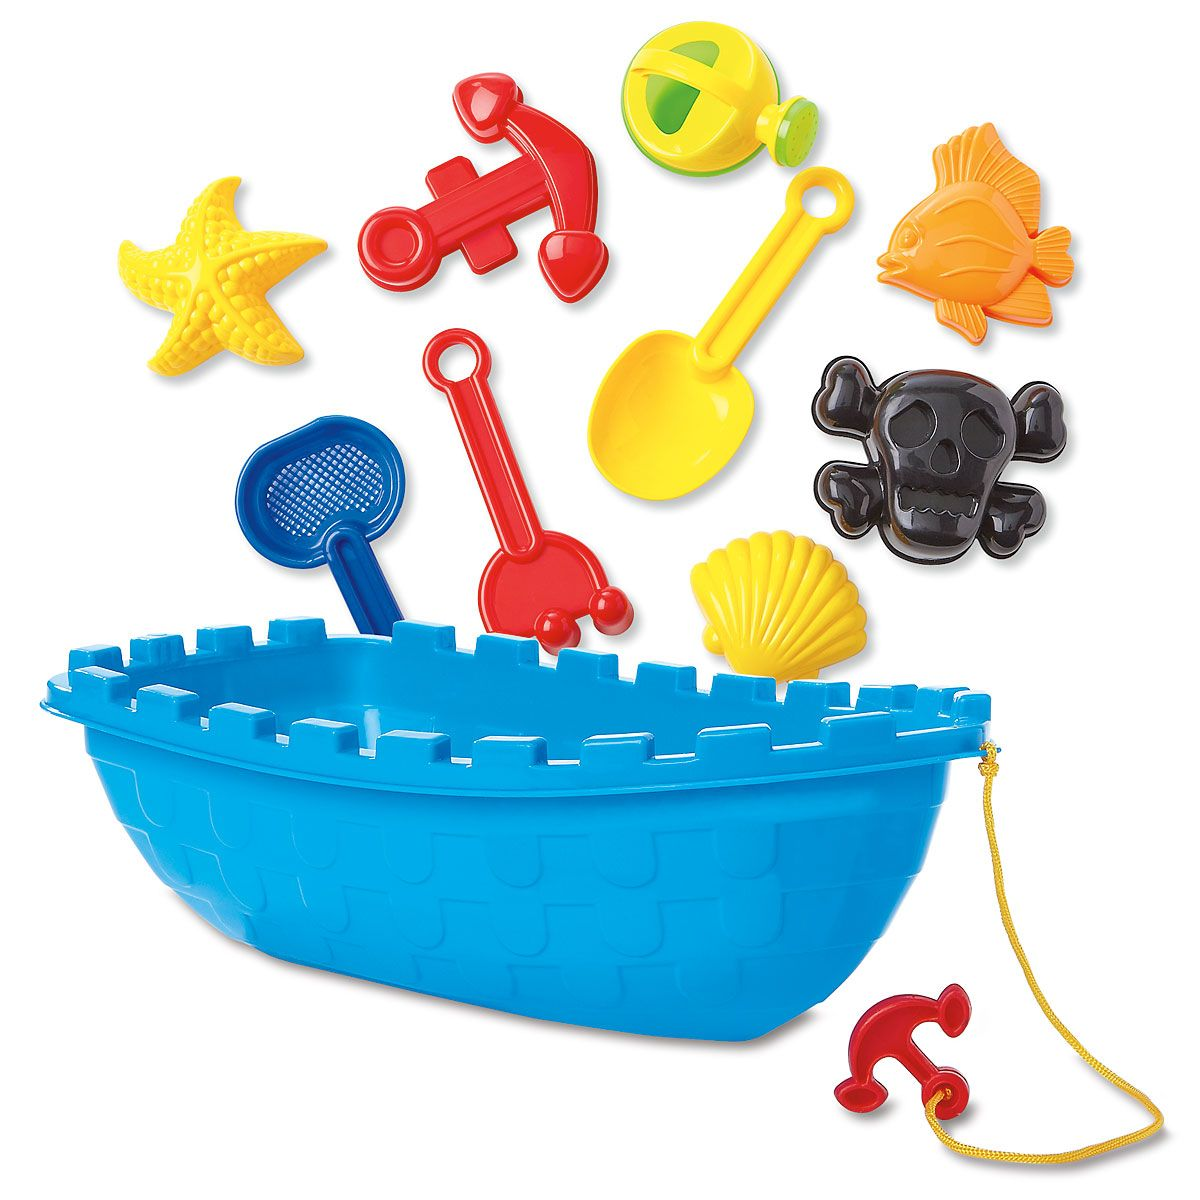 Pirate Boat Sand Toy